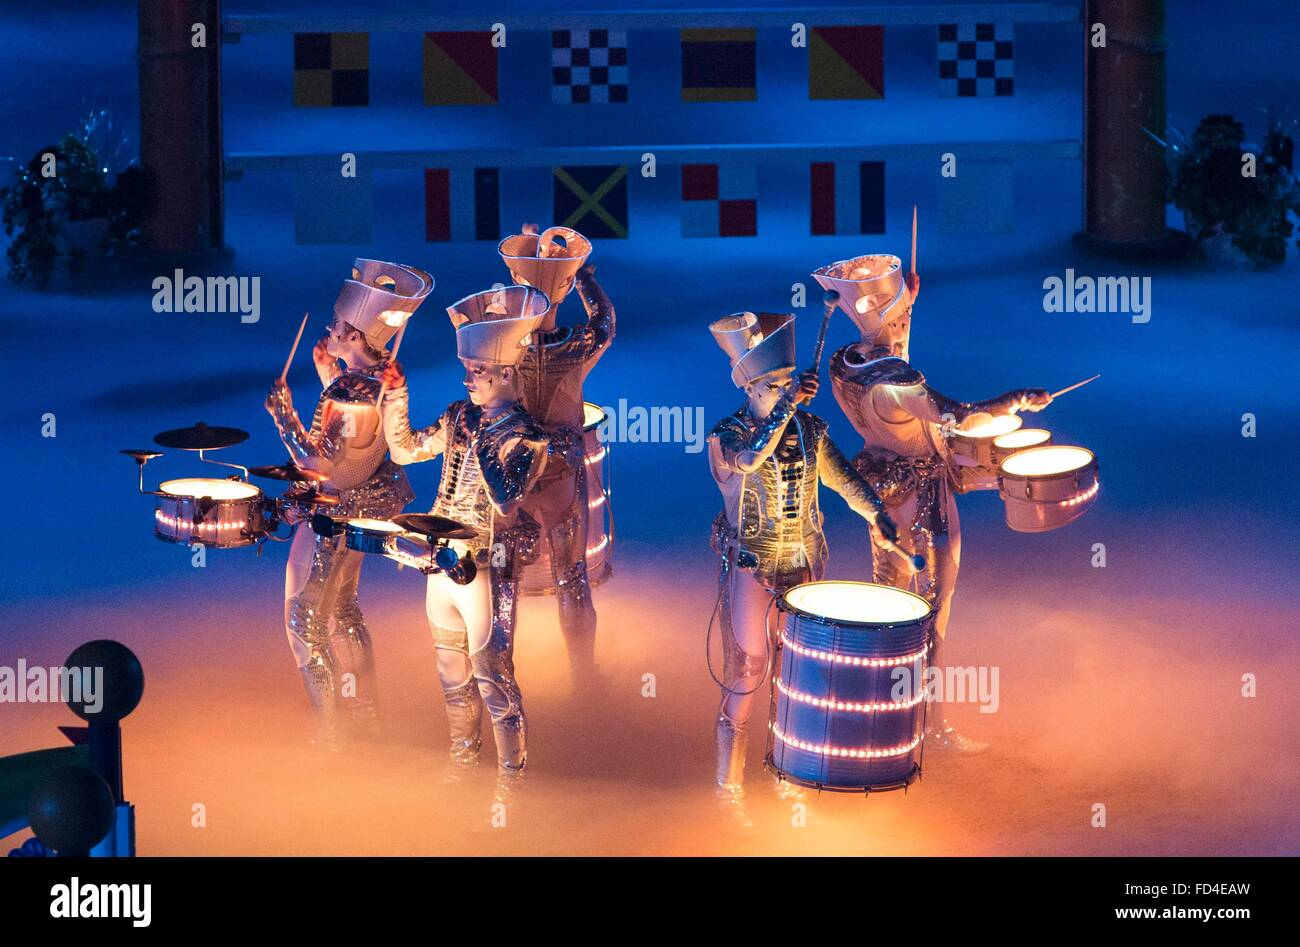 The Liverpool International Horse Show today (Sunday 3/1/16). The LED Drummers entertain the crowd. Stock Photo